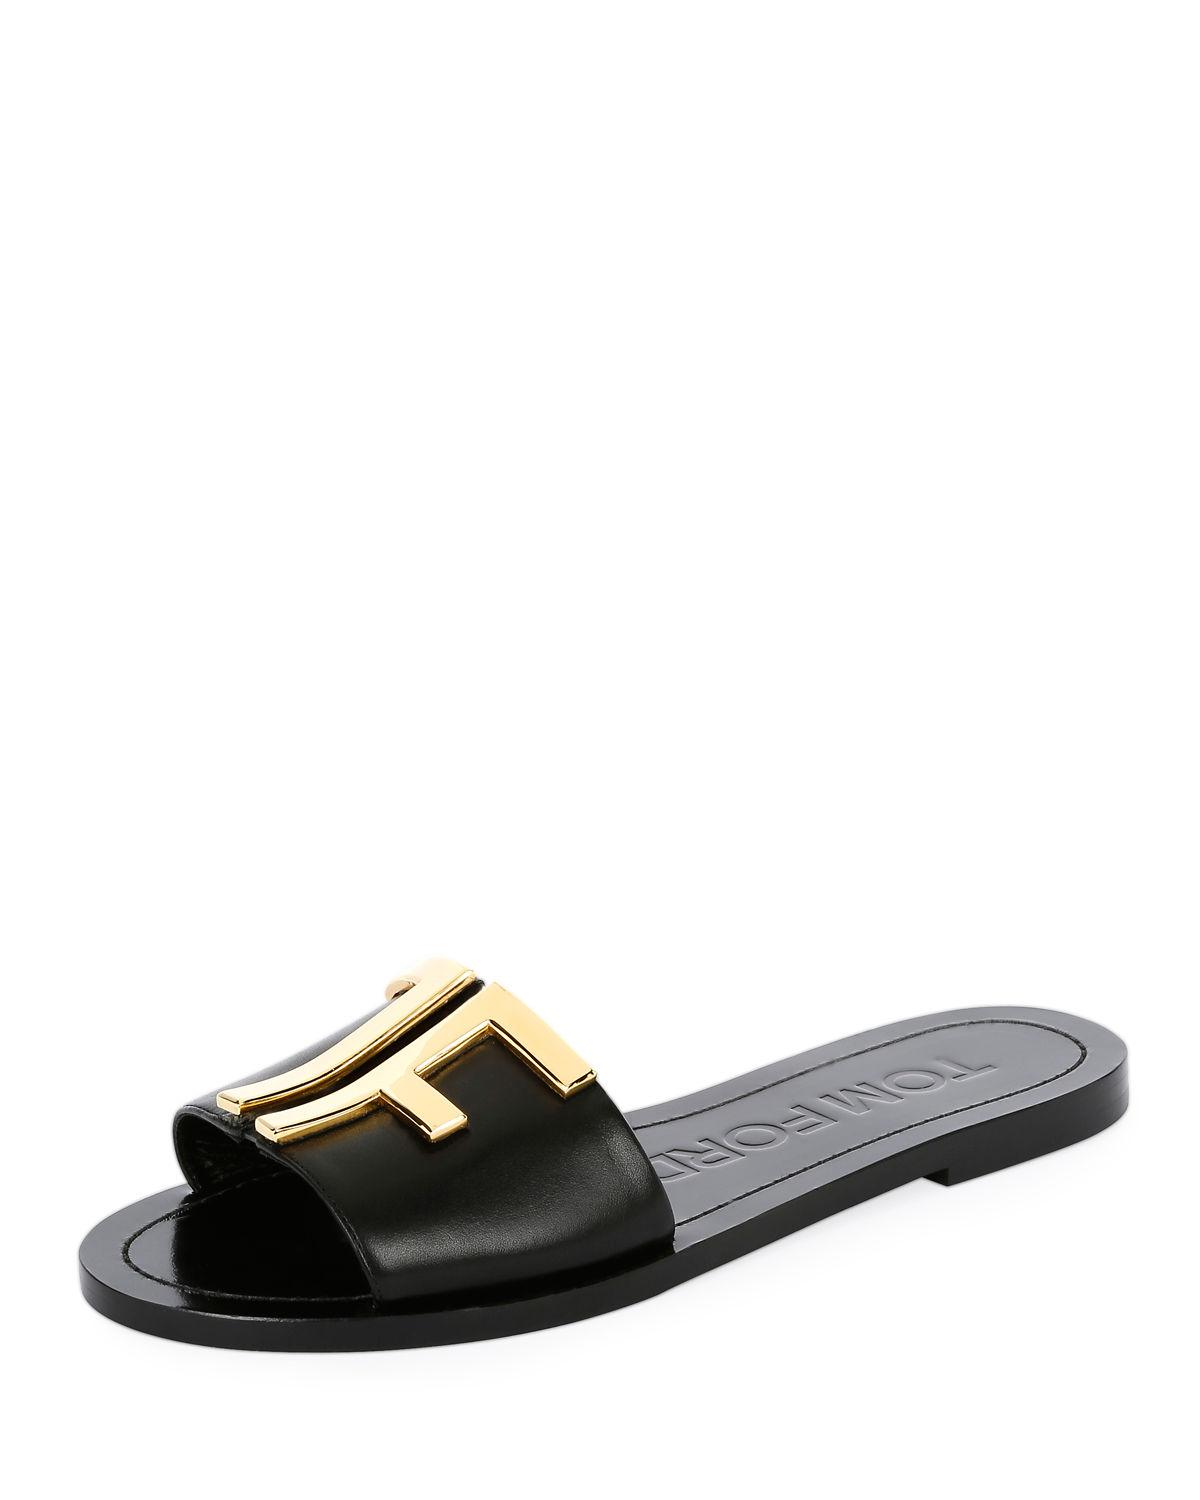 987ef44f219002 Lyst - Tom Ford Tf Flat Slide Sandals in Black